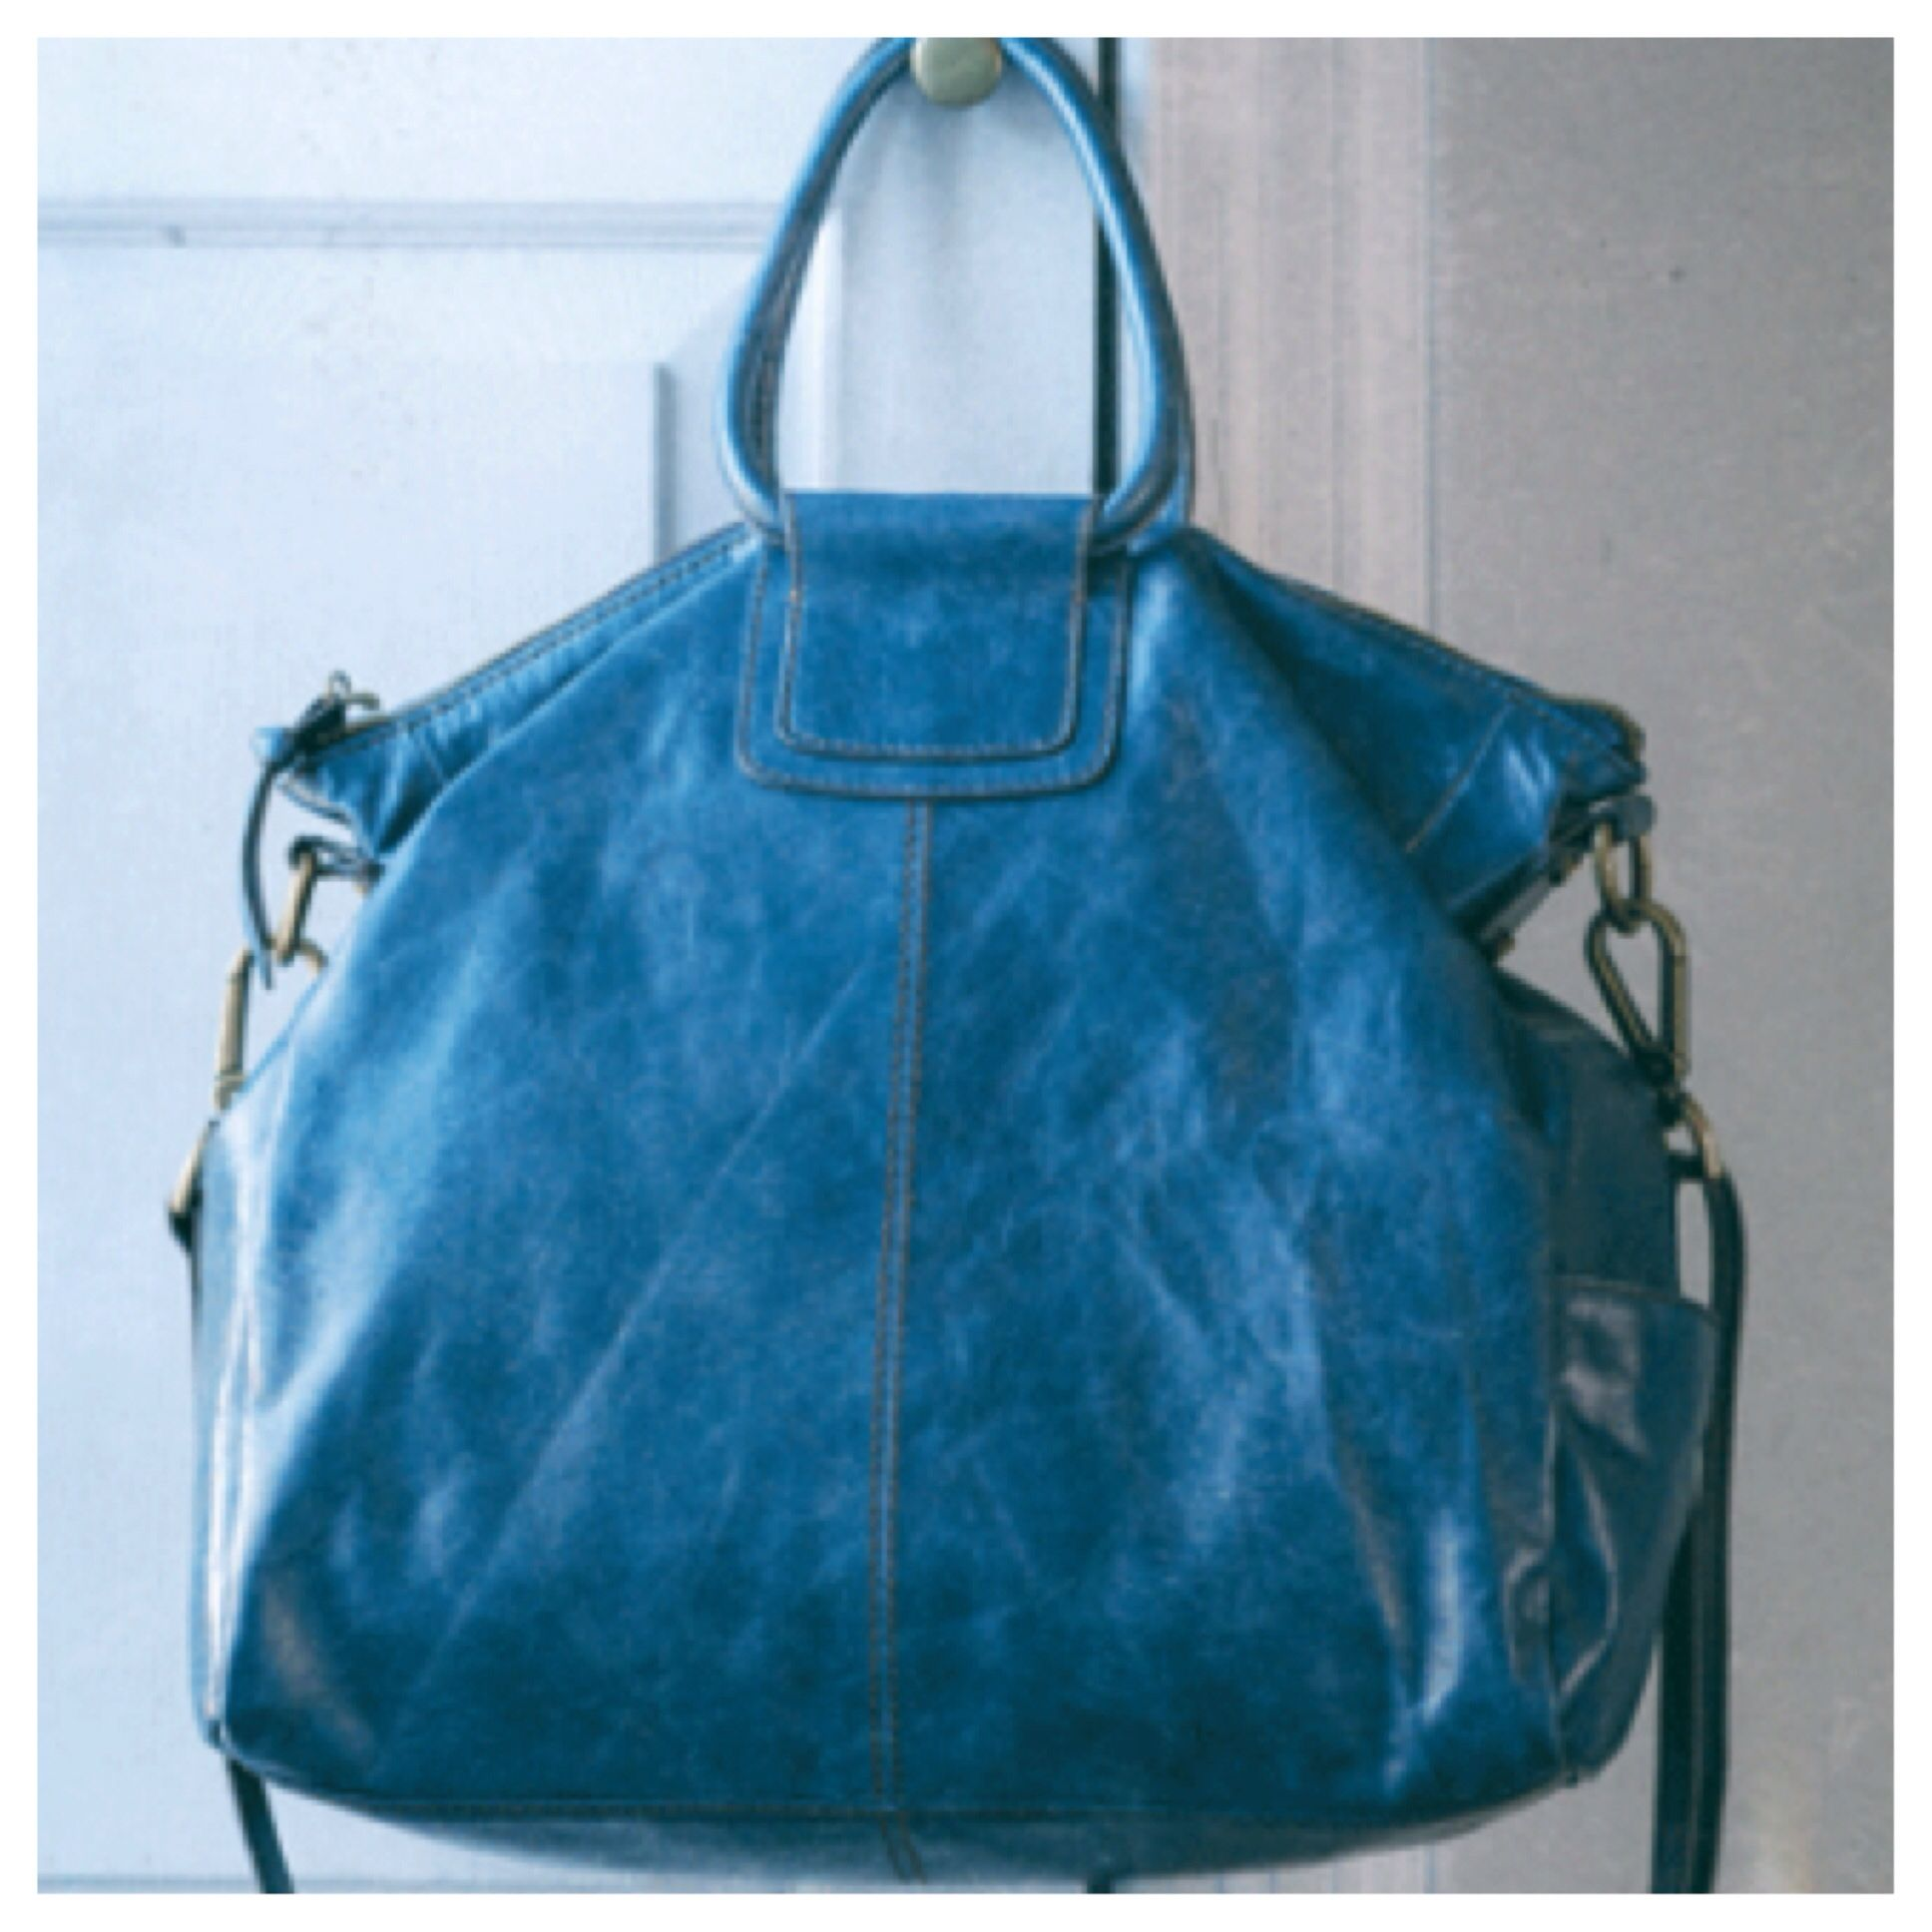 Love this color Sheila Hobo bag! | HOBO-n't You Didn't | Pinterest ...